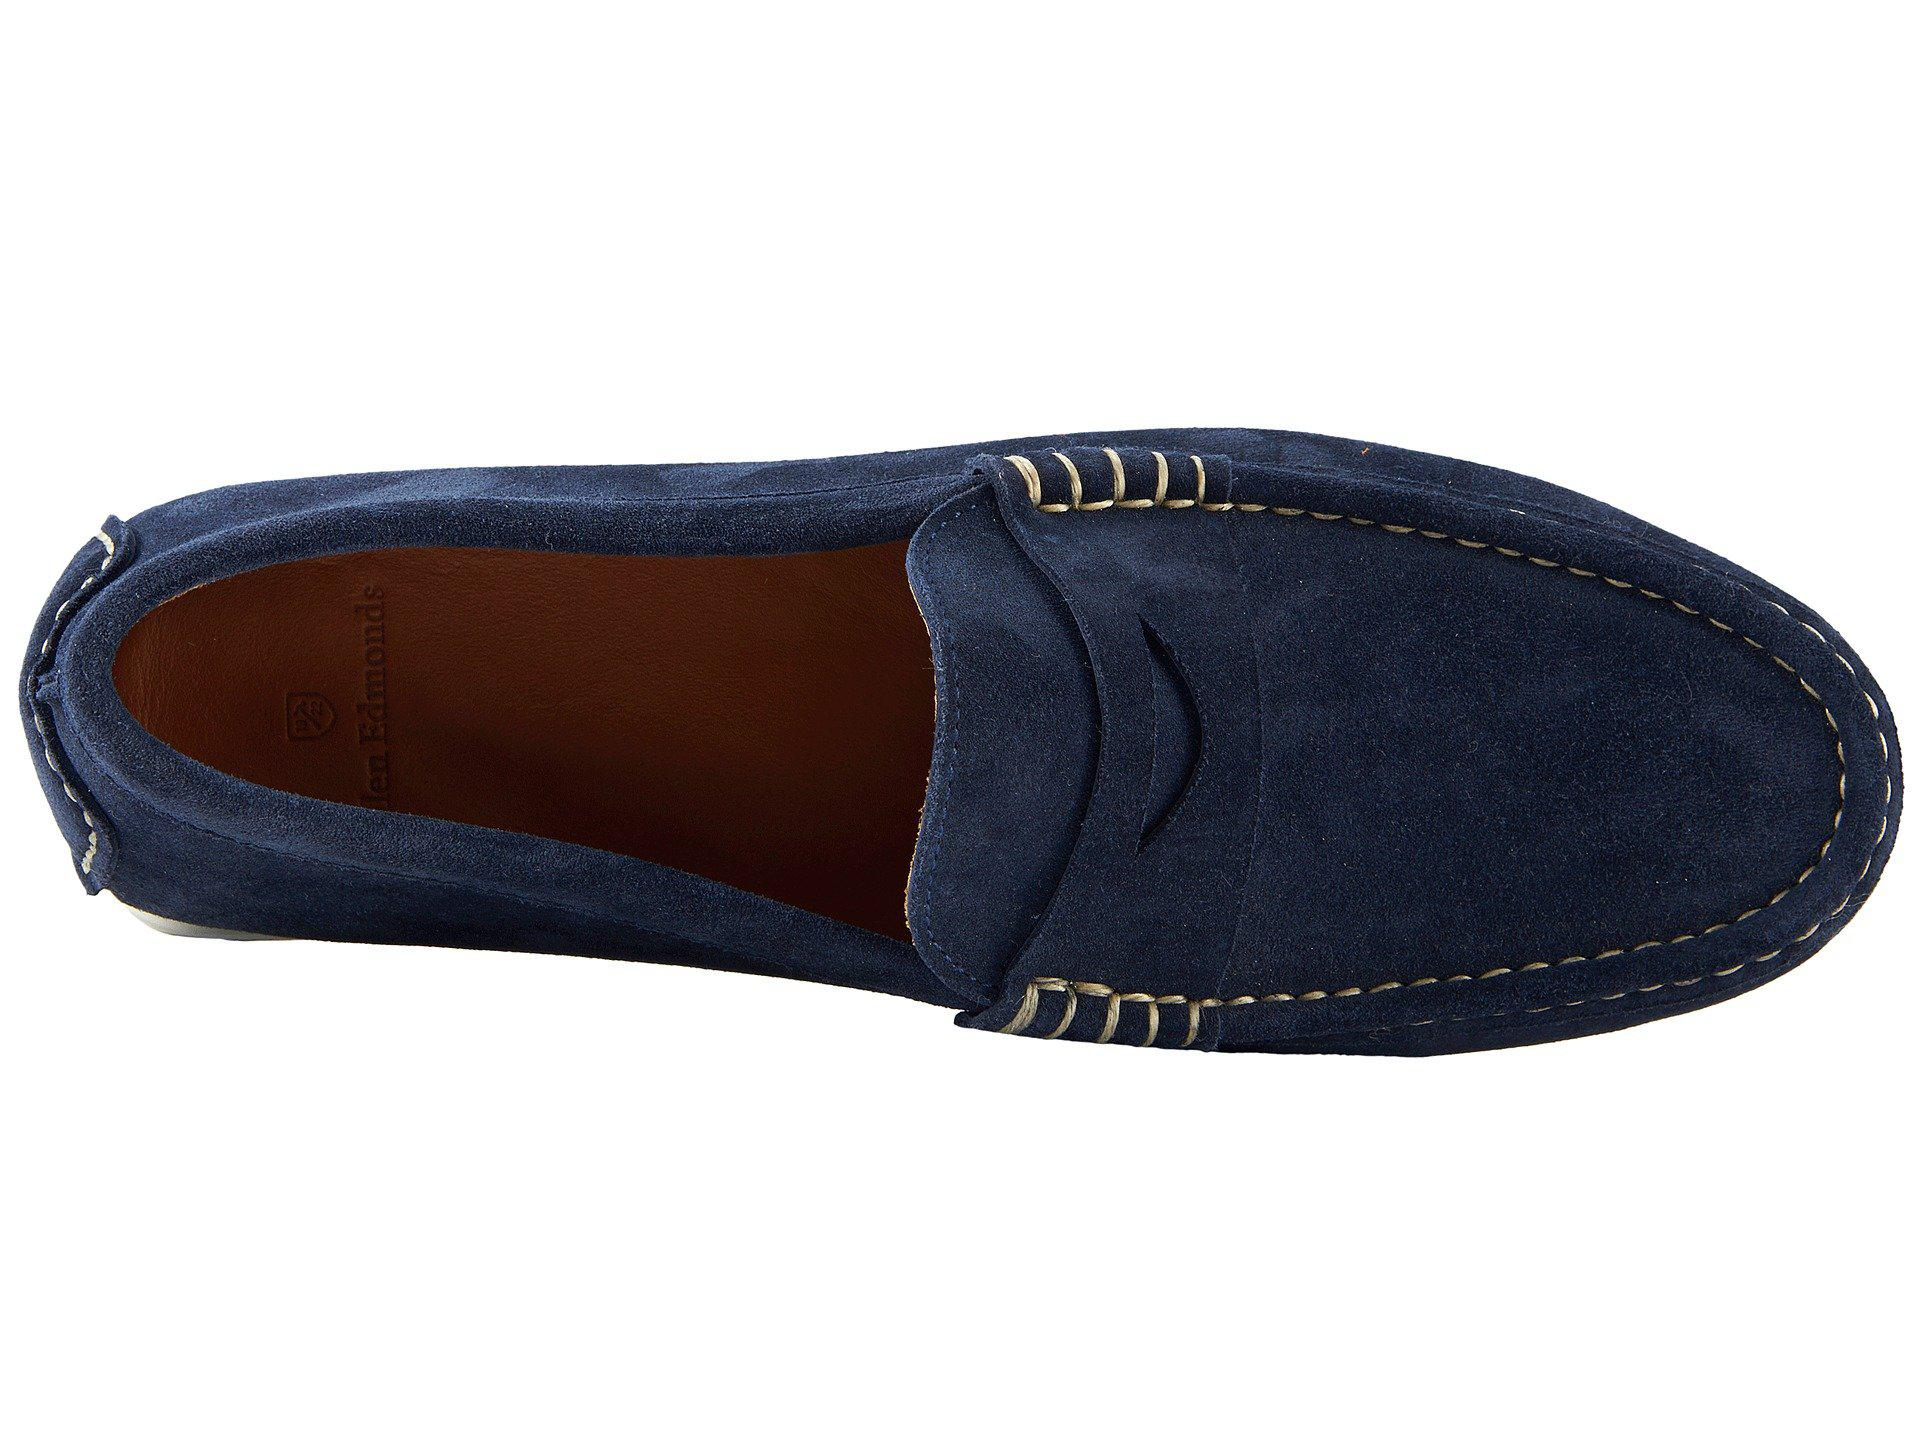 e0289f5da70 Allen Edmonds - Blue Turner Penny for Men - Lyst. View fullscreen